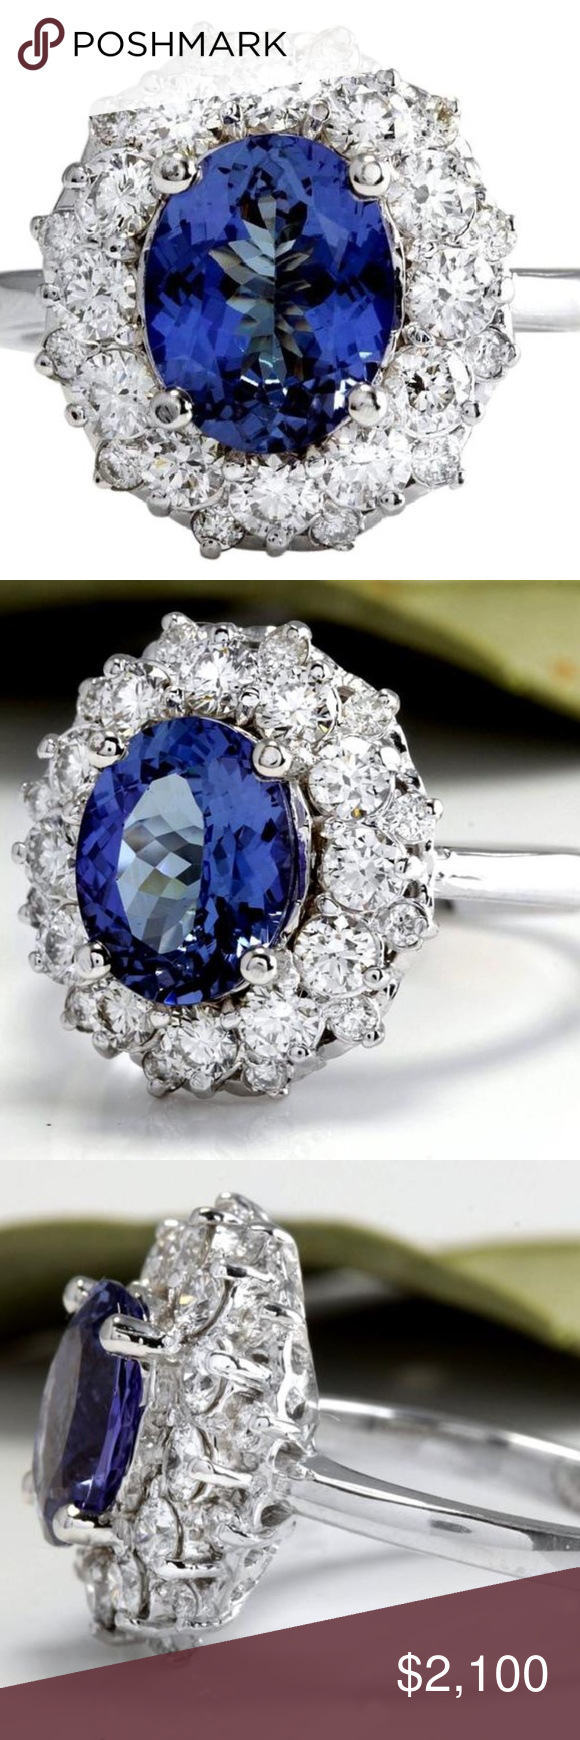 4 25ct Natural Tanzanite Diamond 14kw Gold Ring Tanzanite Diamond Womens Jewelry Rings White Gold Rings